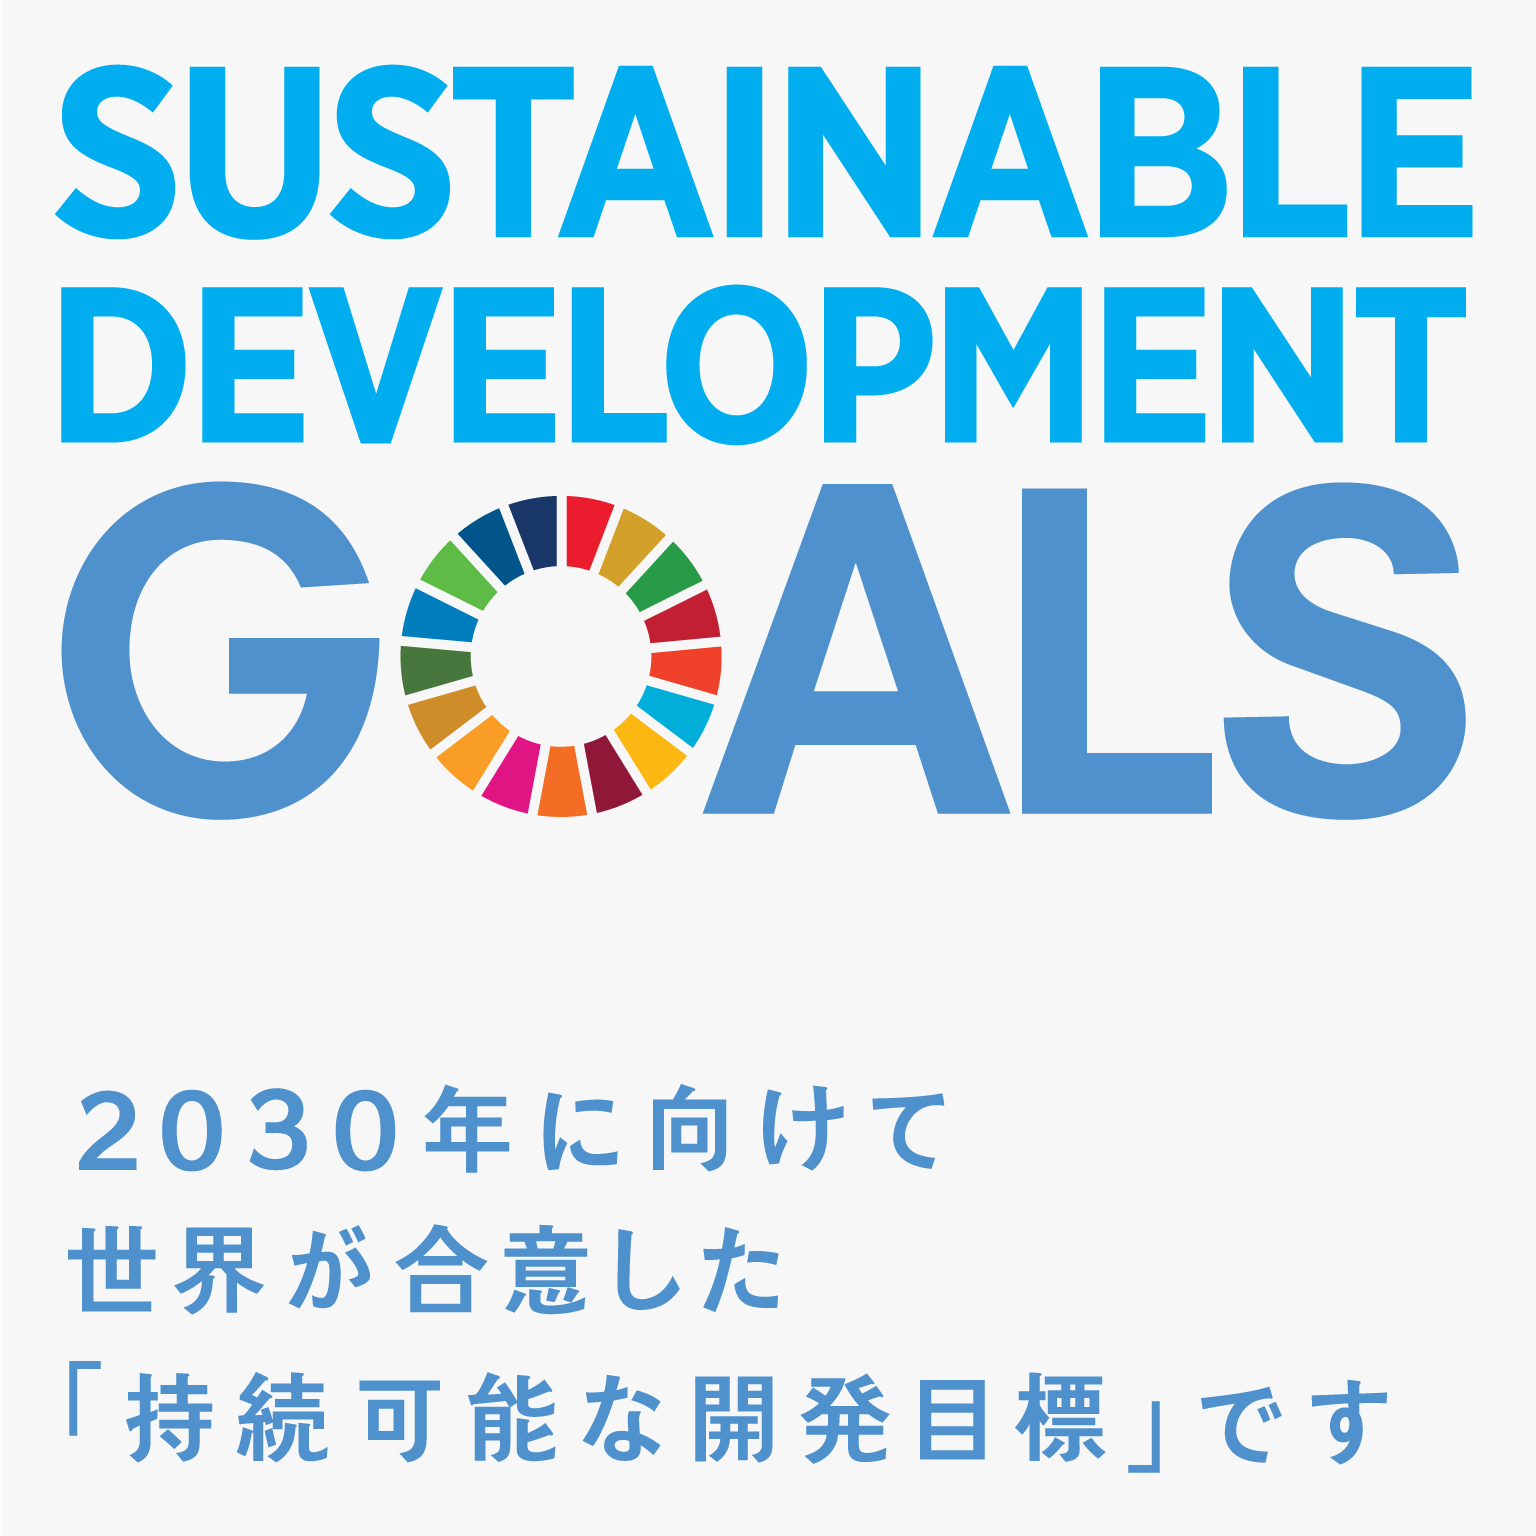 https://www.unic.or.jp/files/sdg_icon_18_ja.png